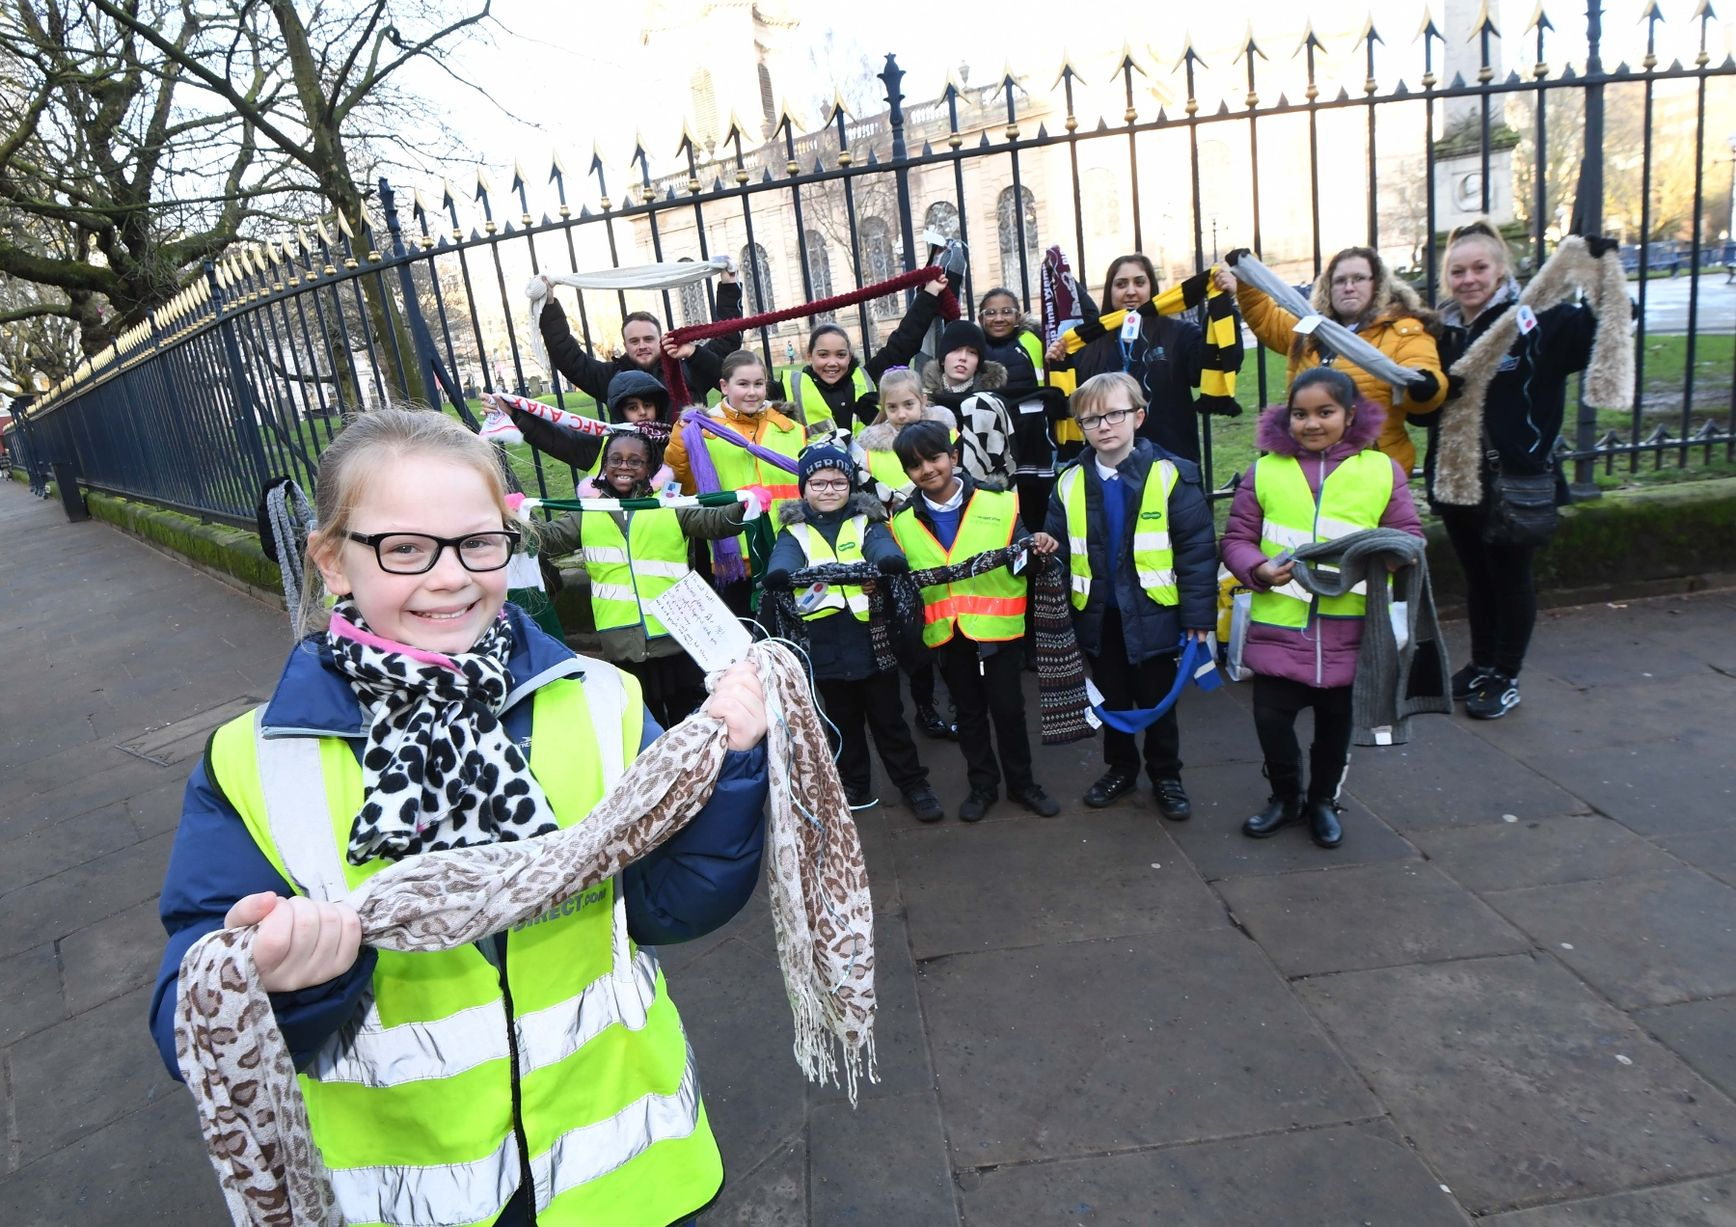 Pupils from Oasis Academy Short Heath hand out scarves to city's homeless and attach messages